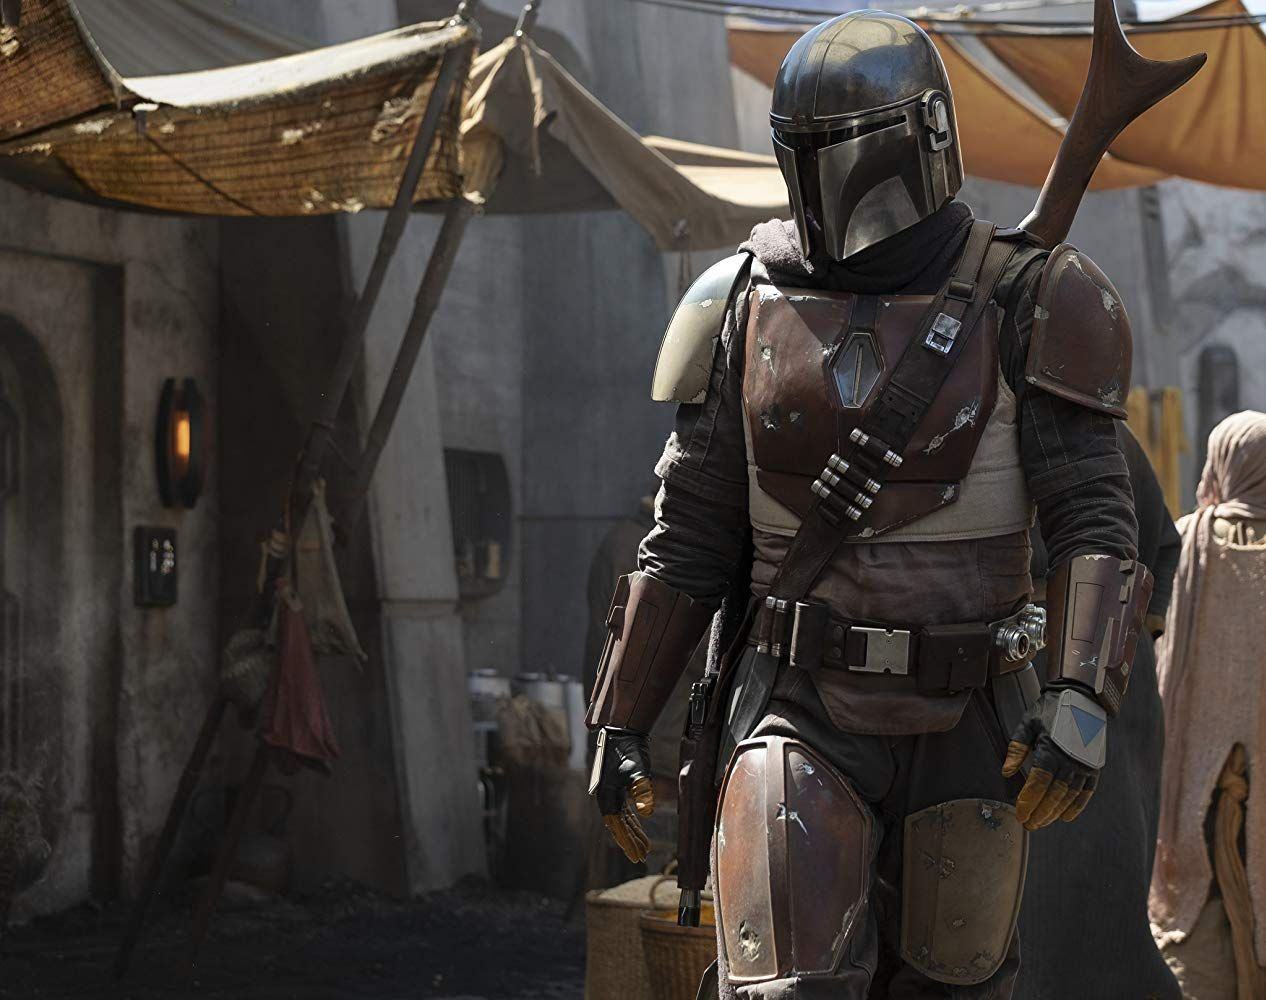 Here's When Each Episode of The Mandalorian Will Be Released on Disney+